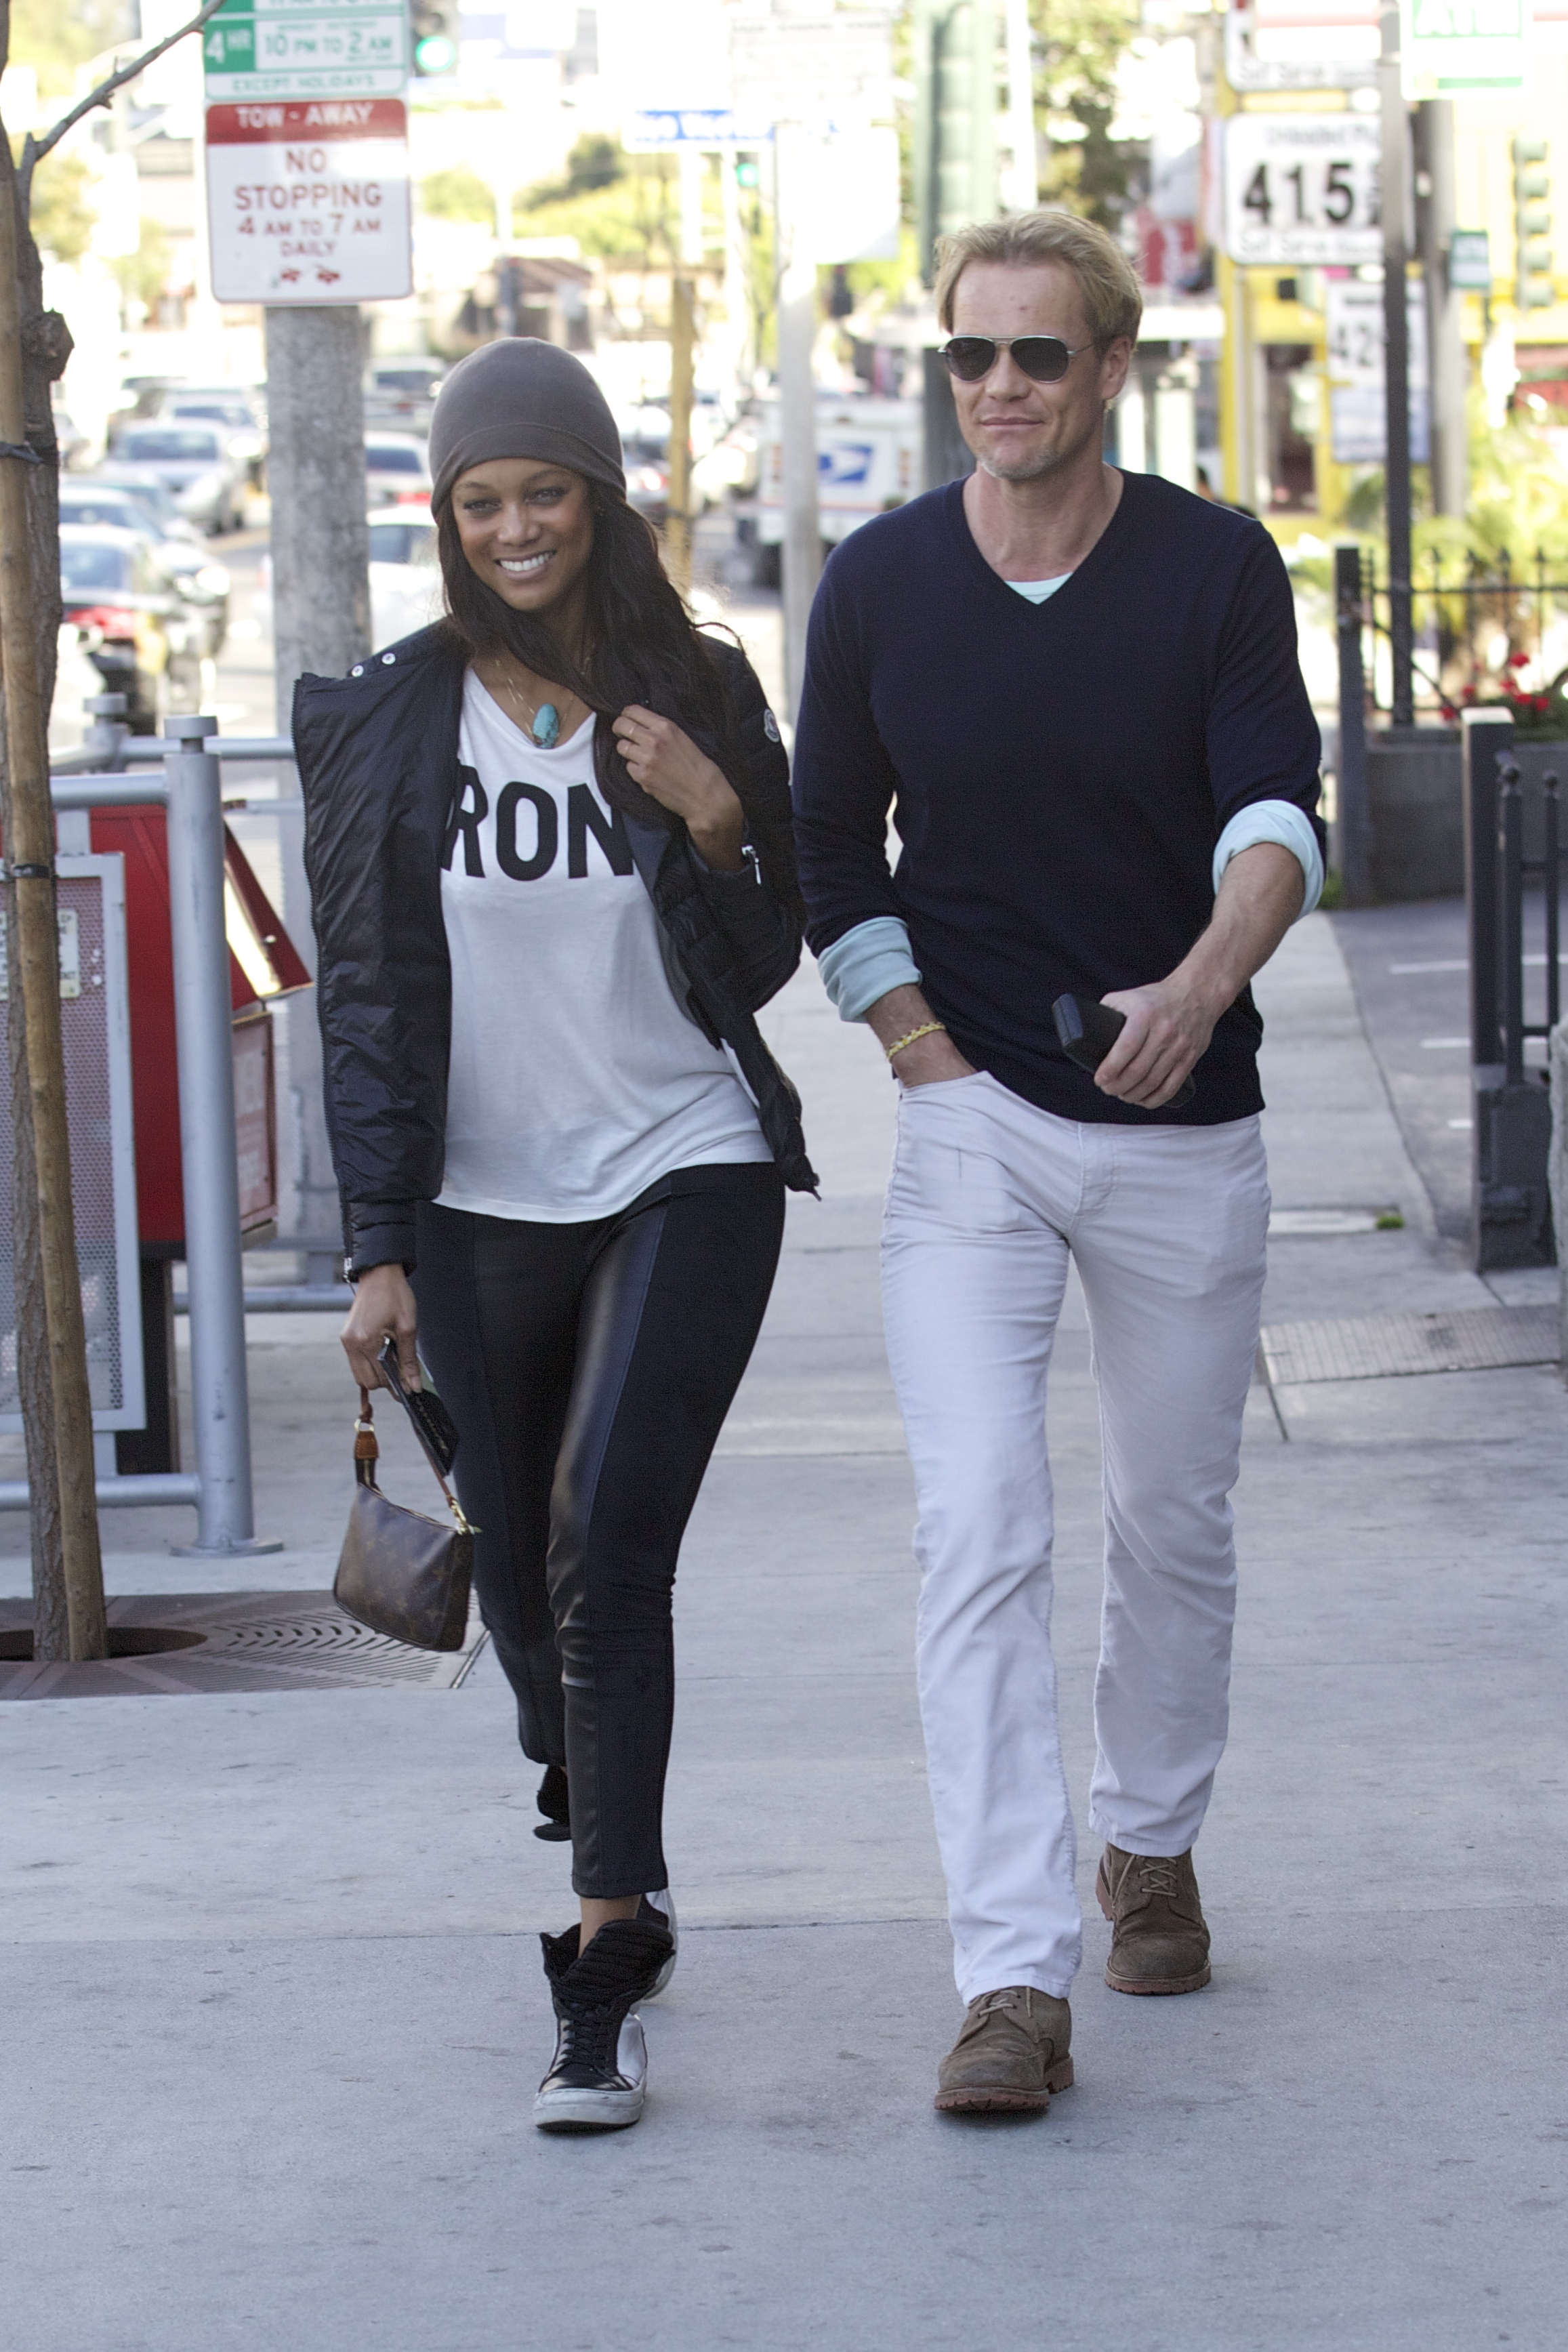 Tyra Banks and Erik Asla go out to lunch at Pearl's restaurant in West Hollywood on Feb. 7, 2014.